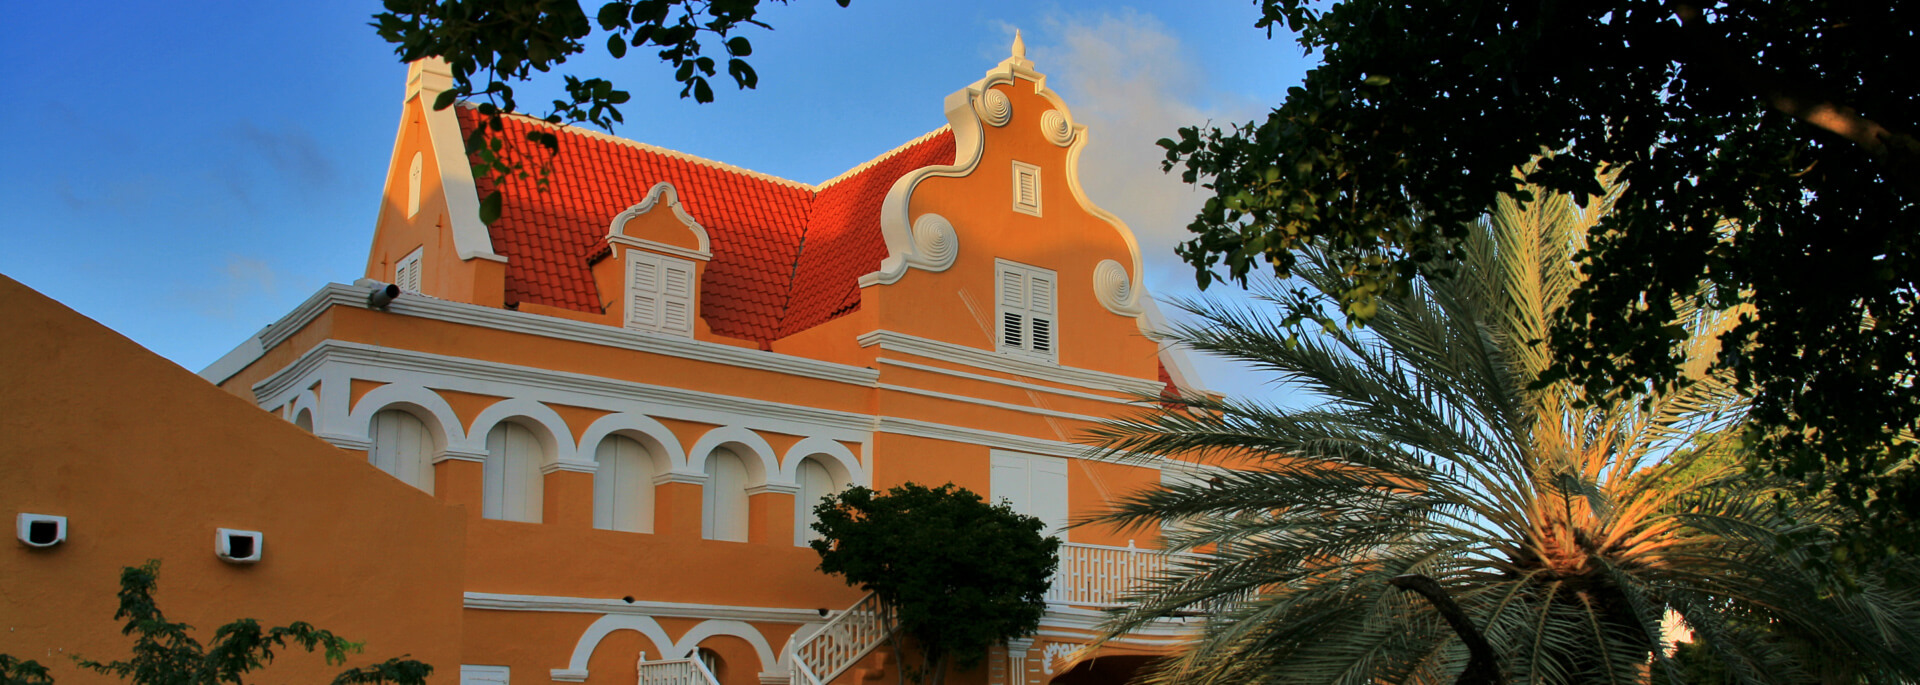 Fotos: Willemstad, Curacao